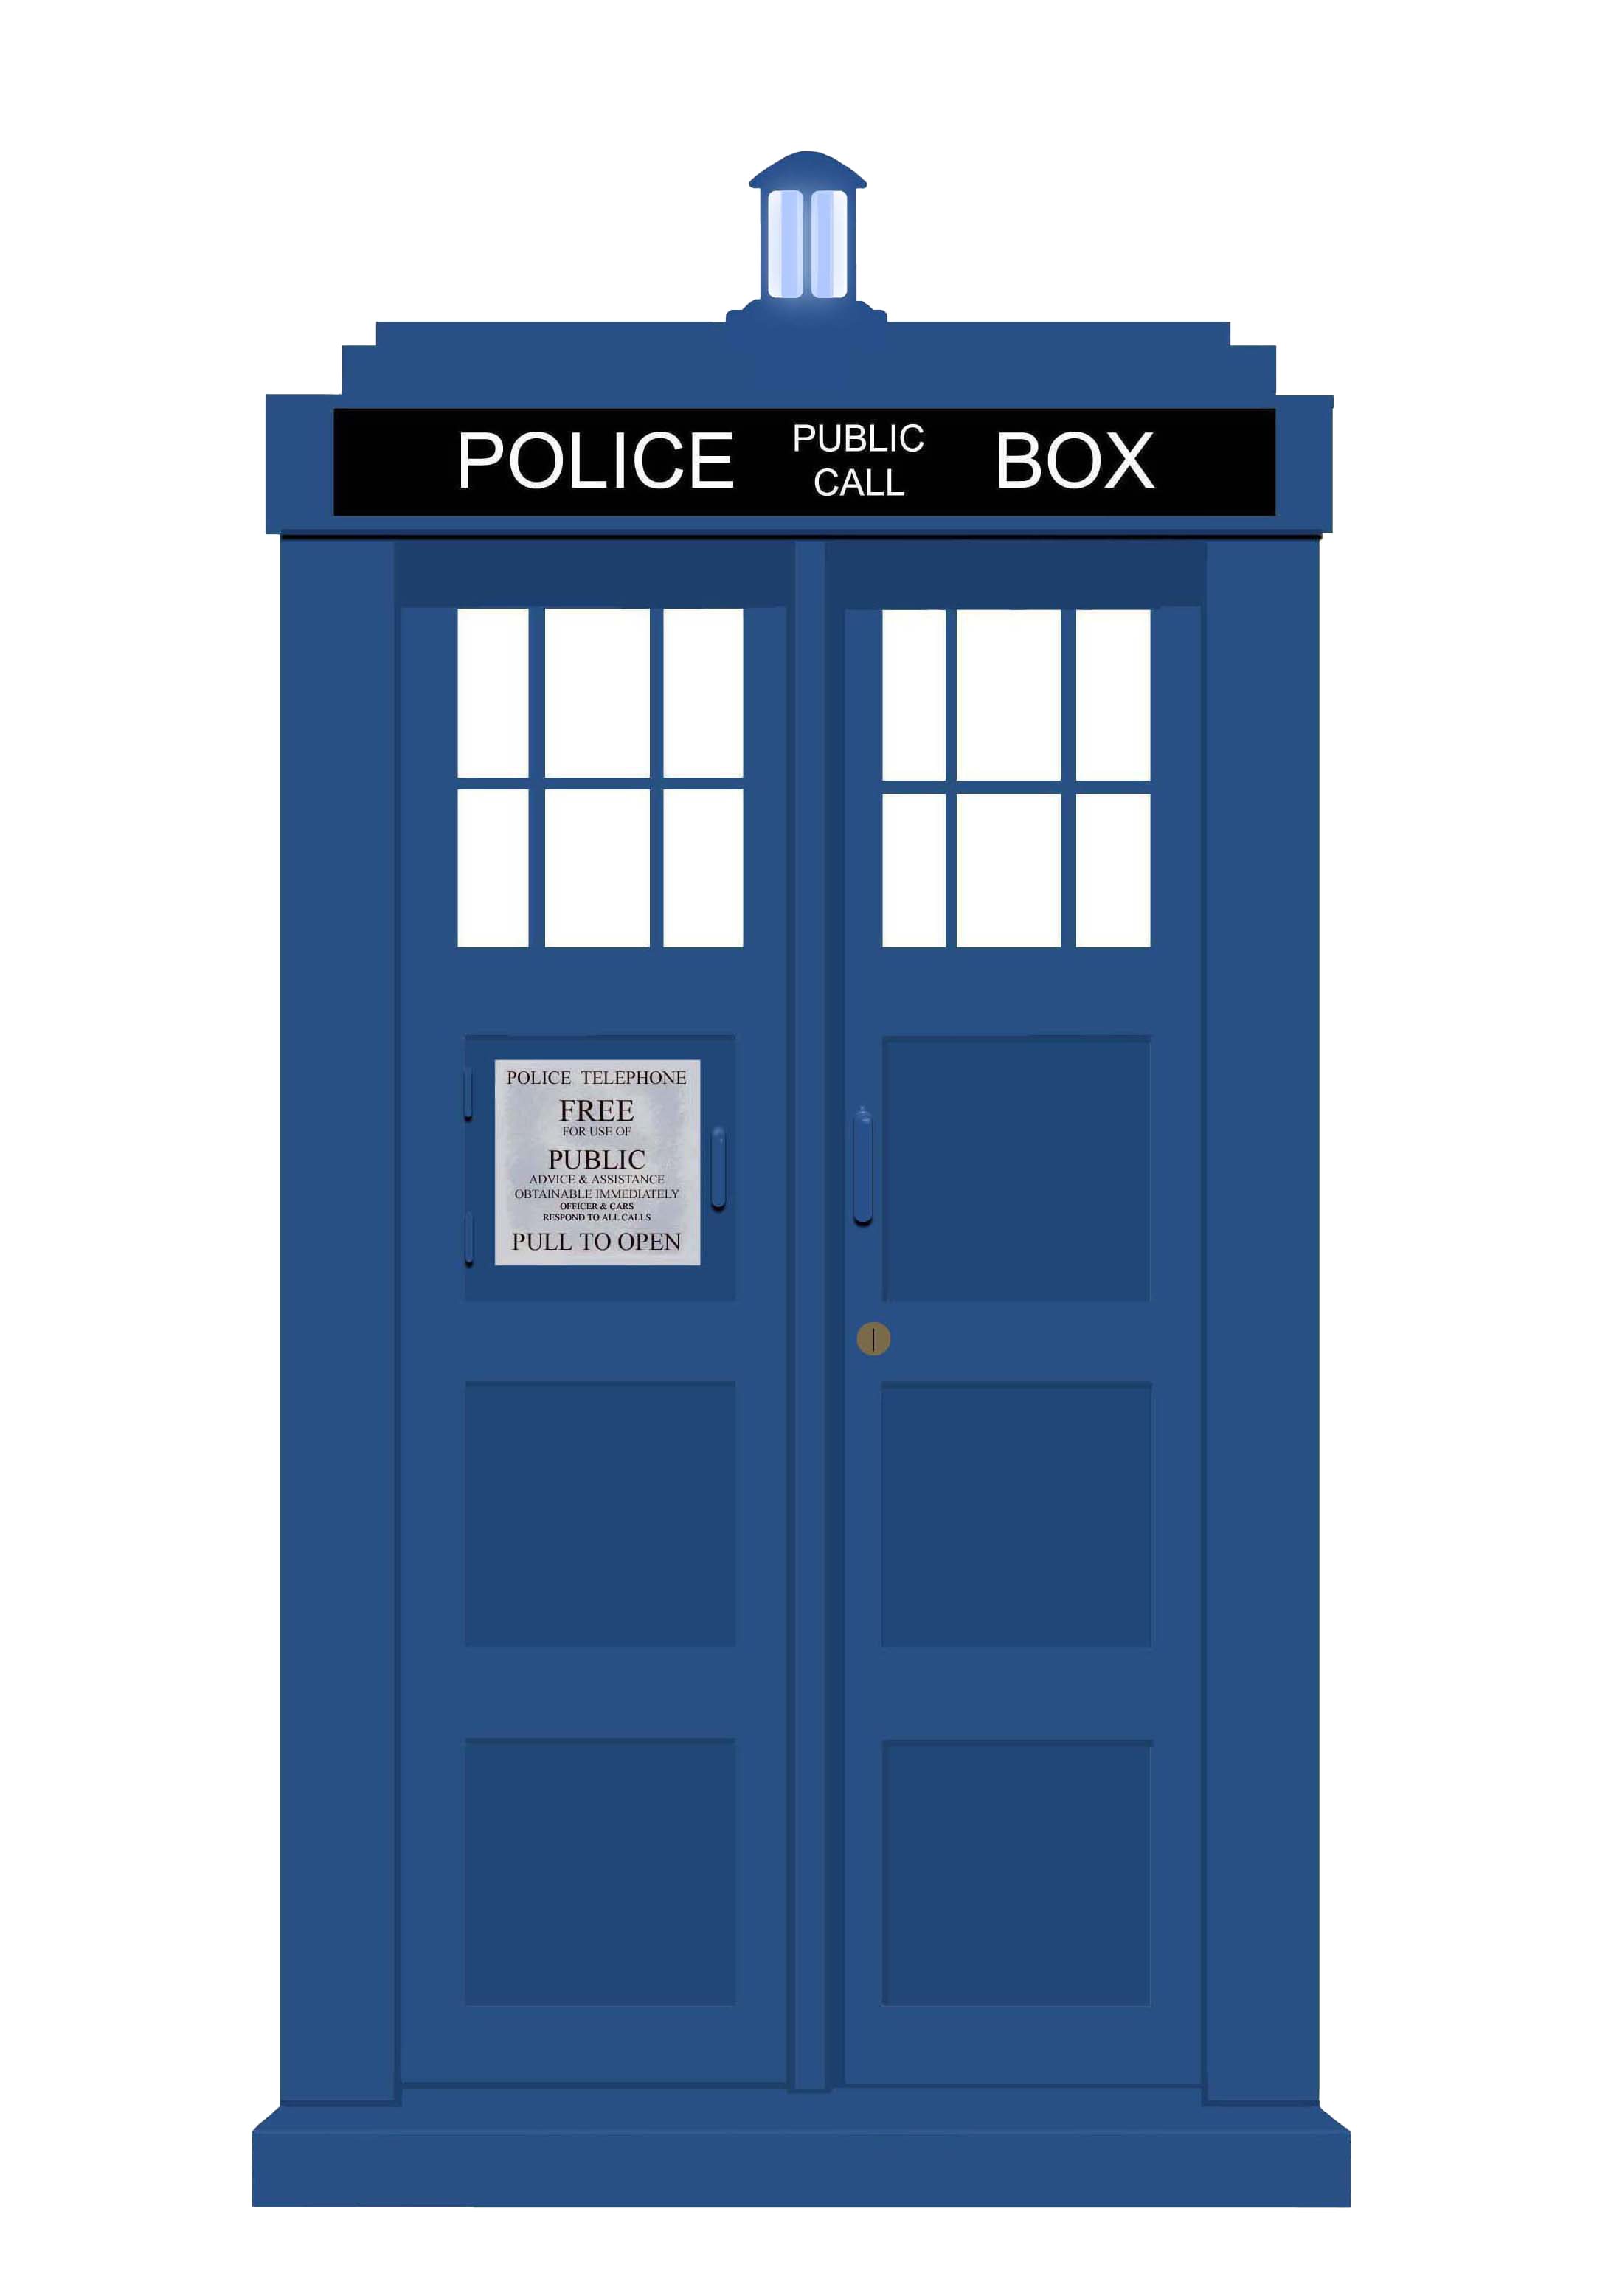 _images/TARDIS_by_Ambient_Lullaby.png